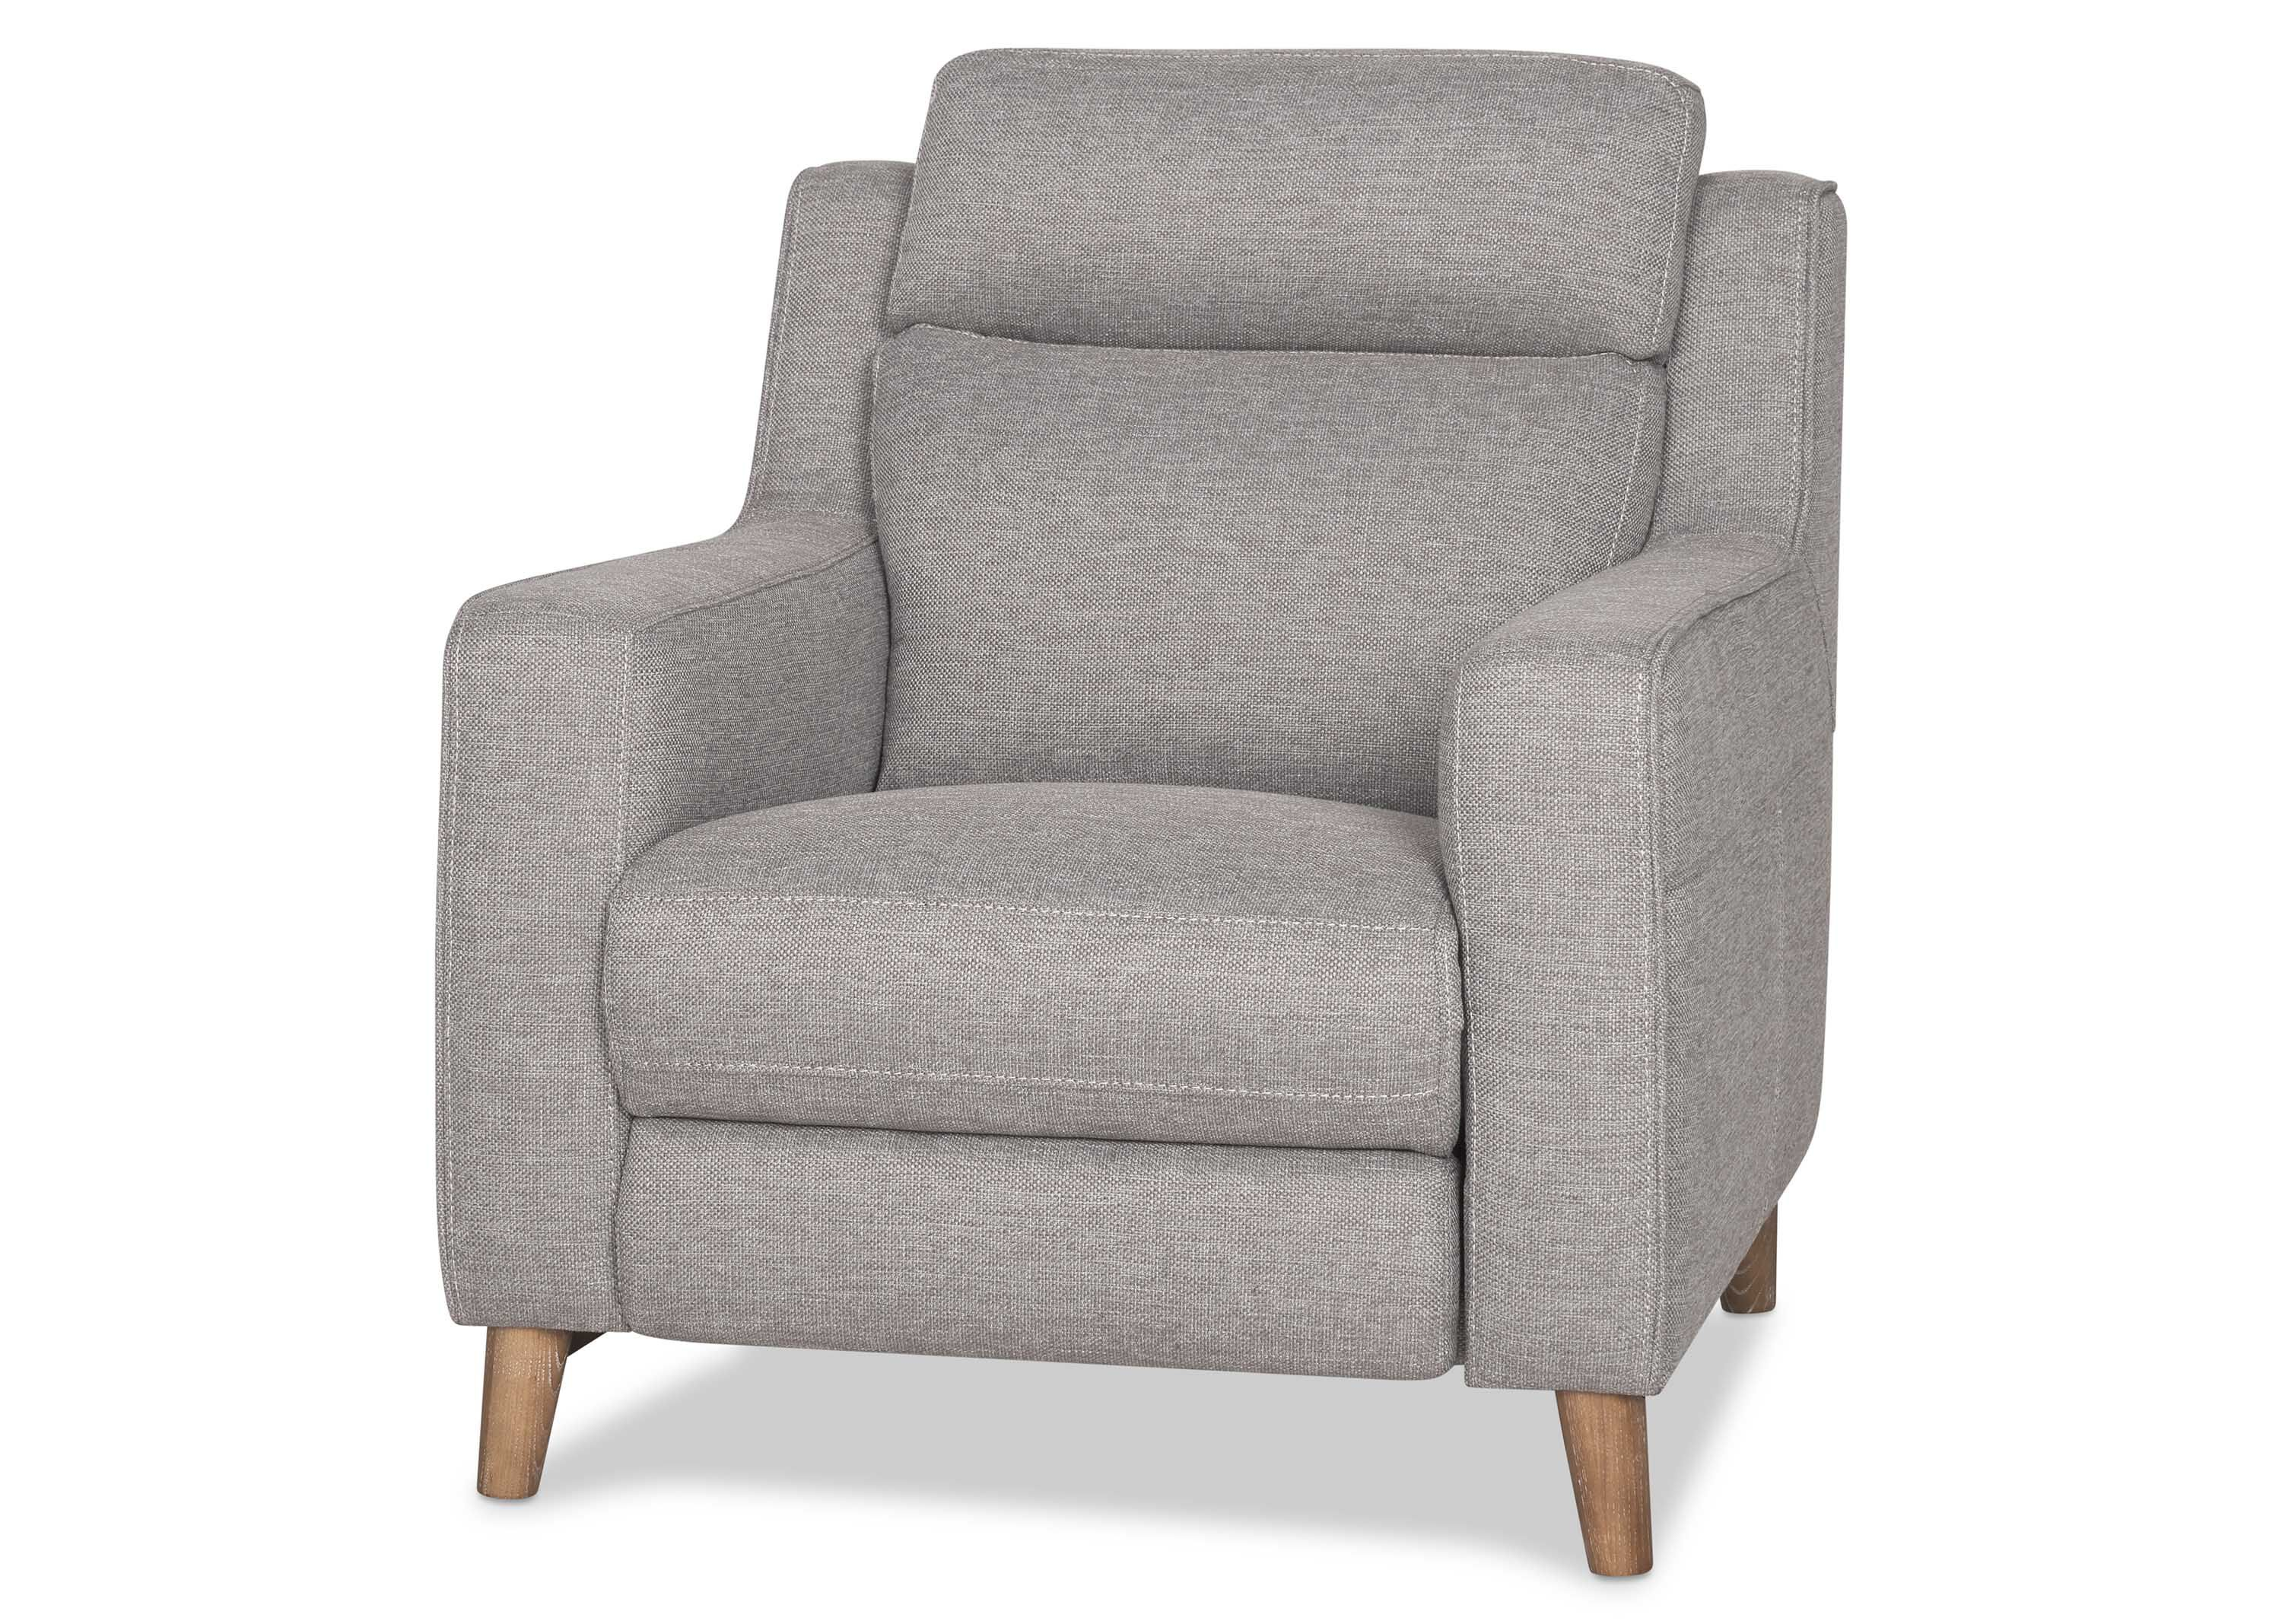 Fauteuil Inclinable Sanibel Brava Gris Urban Barn